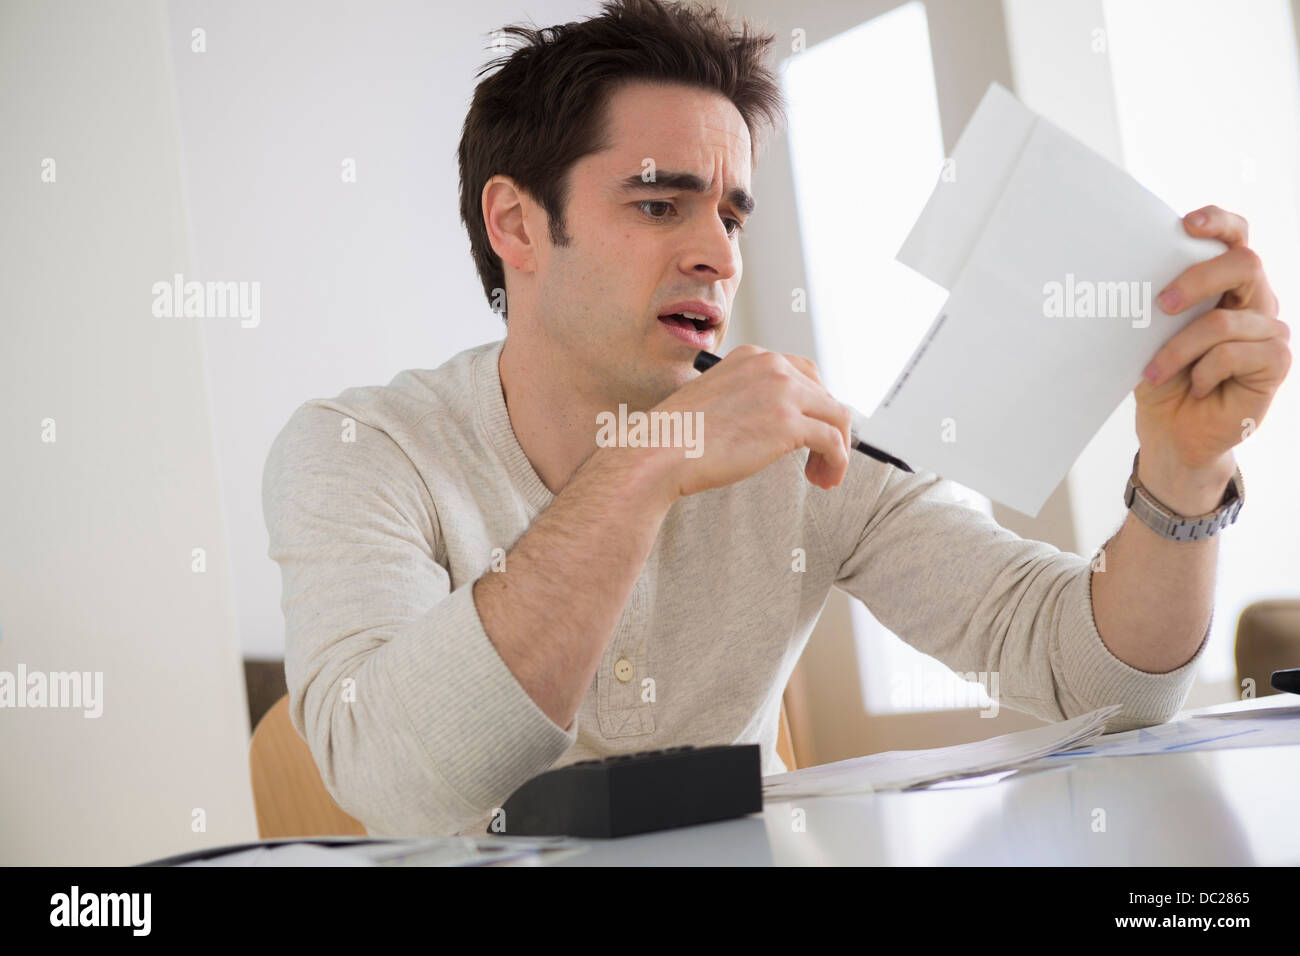 Worried looking man wearing holding document - Stock Image